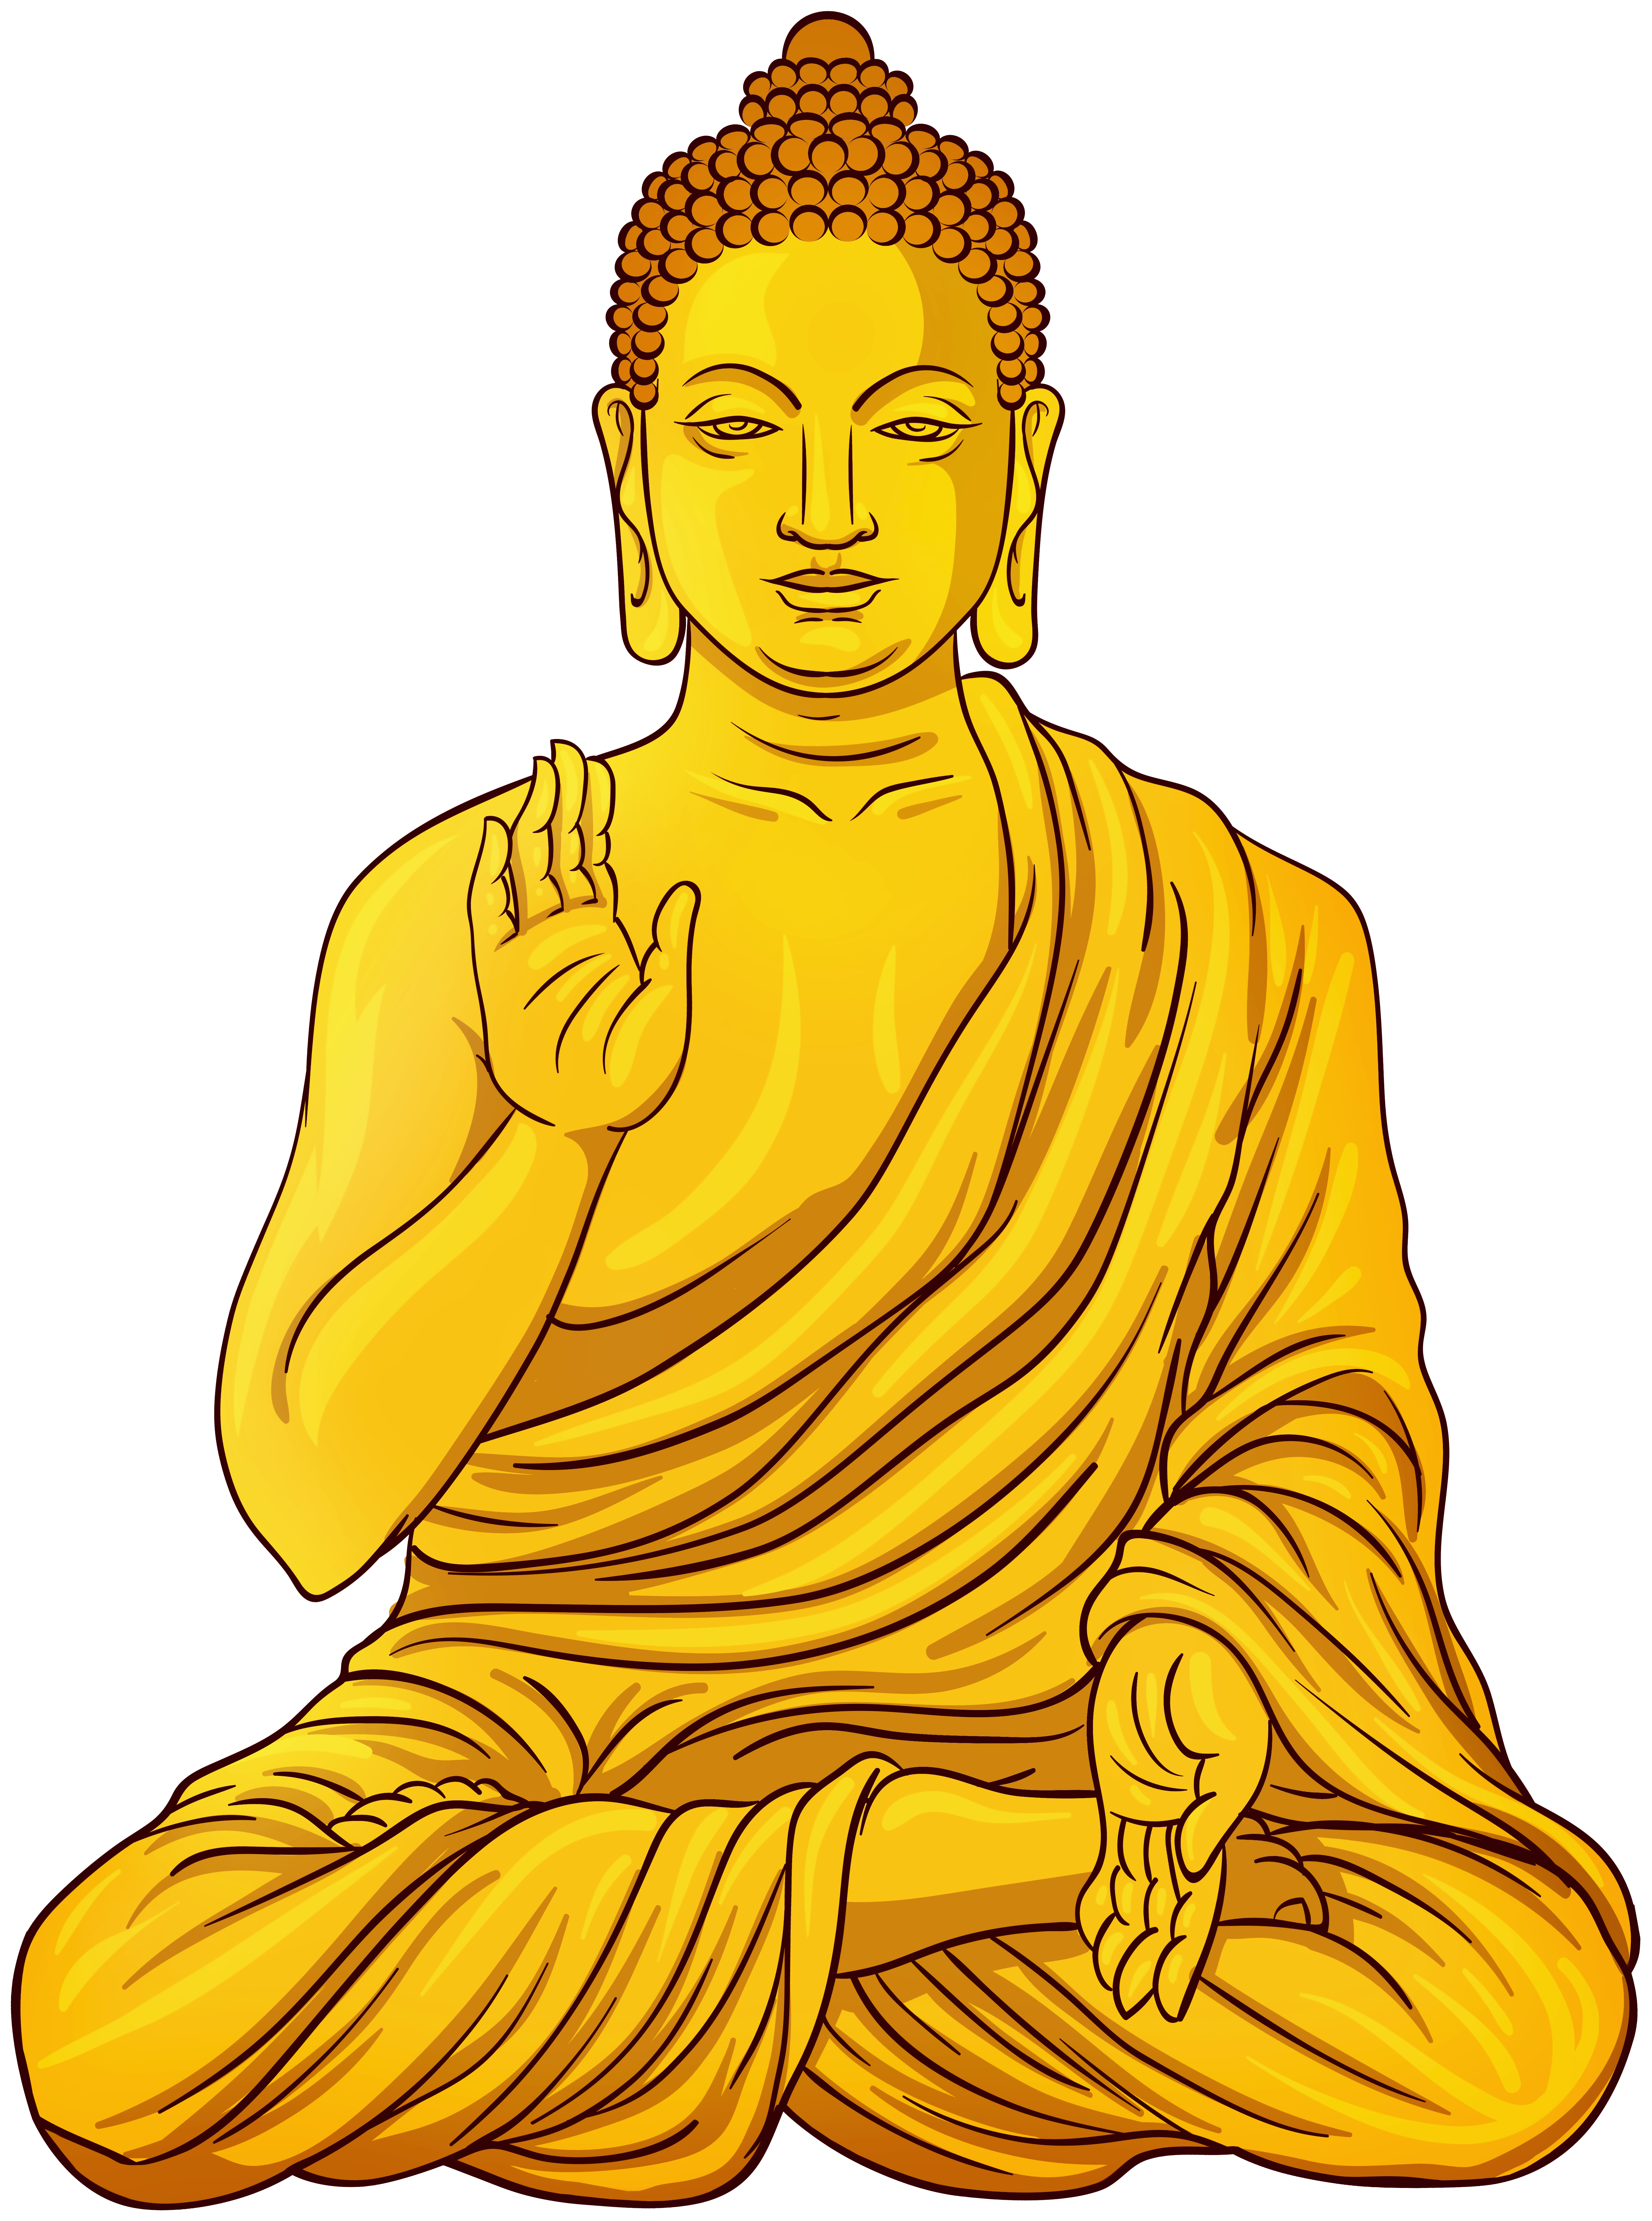 Buddha clipart yellow. Gold statue png clip